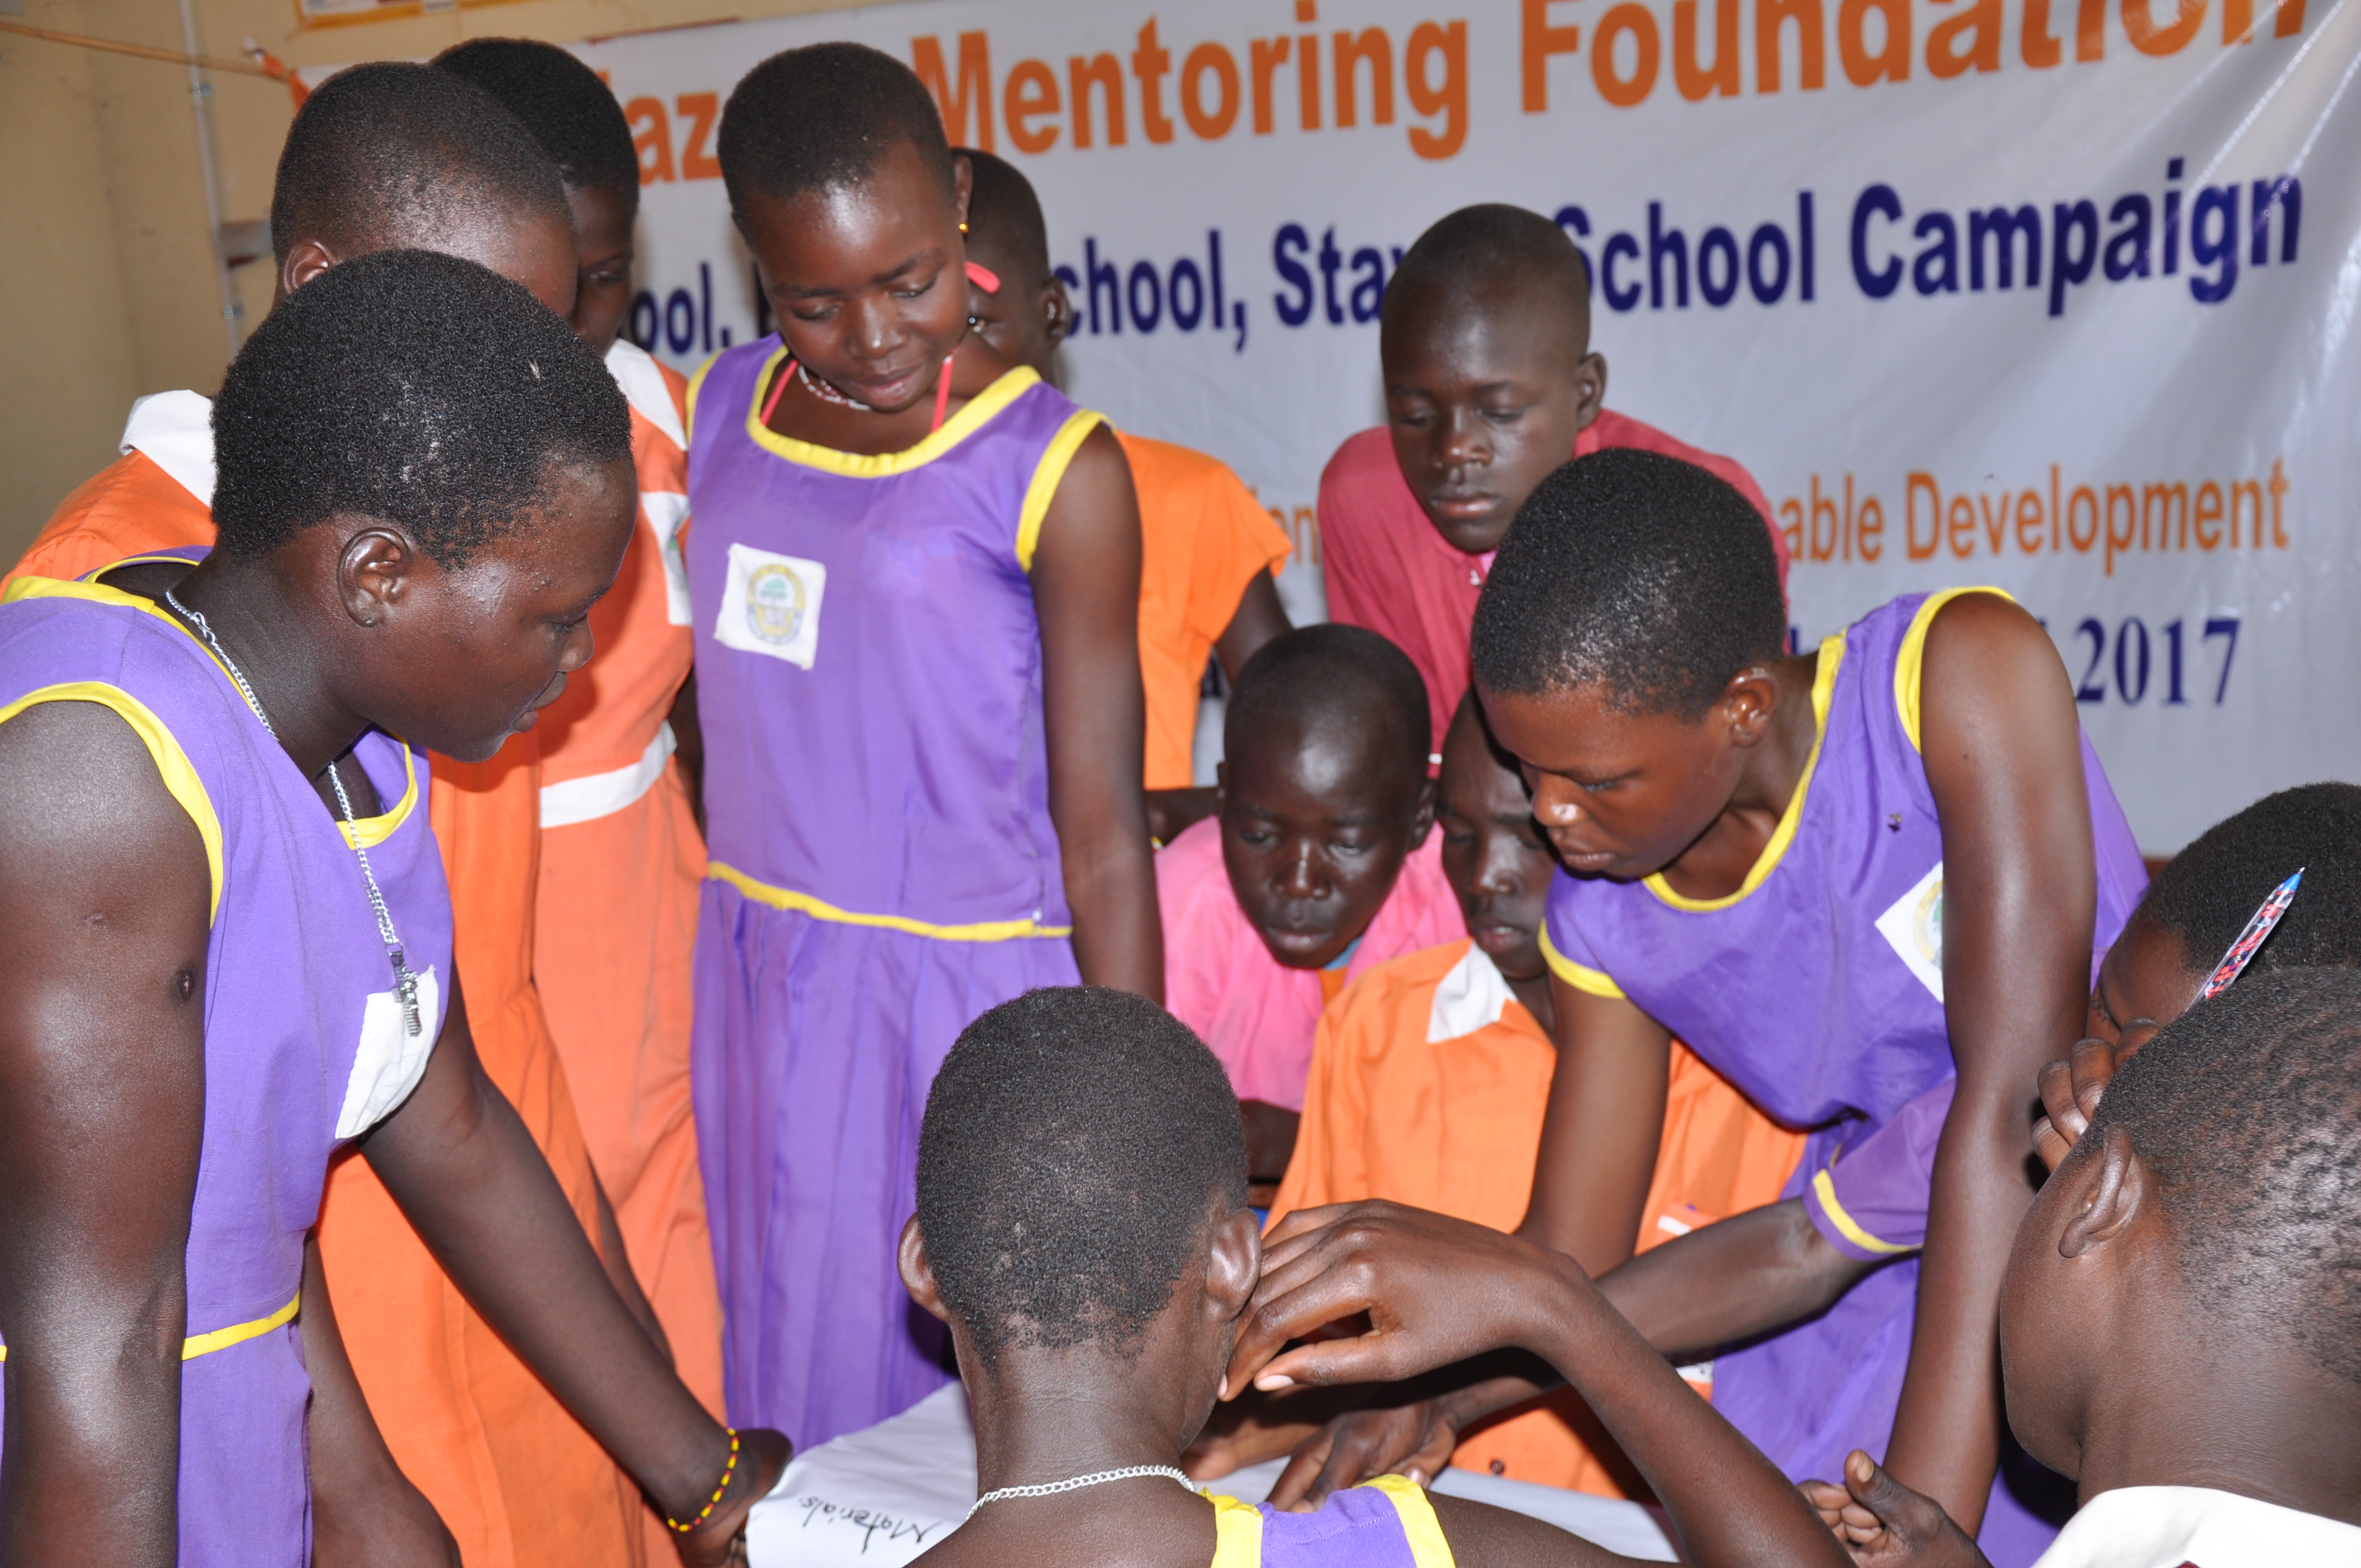 <p>We recognize children as advocates, contributors to girls' education and hold duty bearers accountable for their decisions and actions</p>